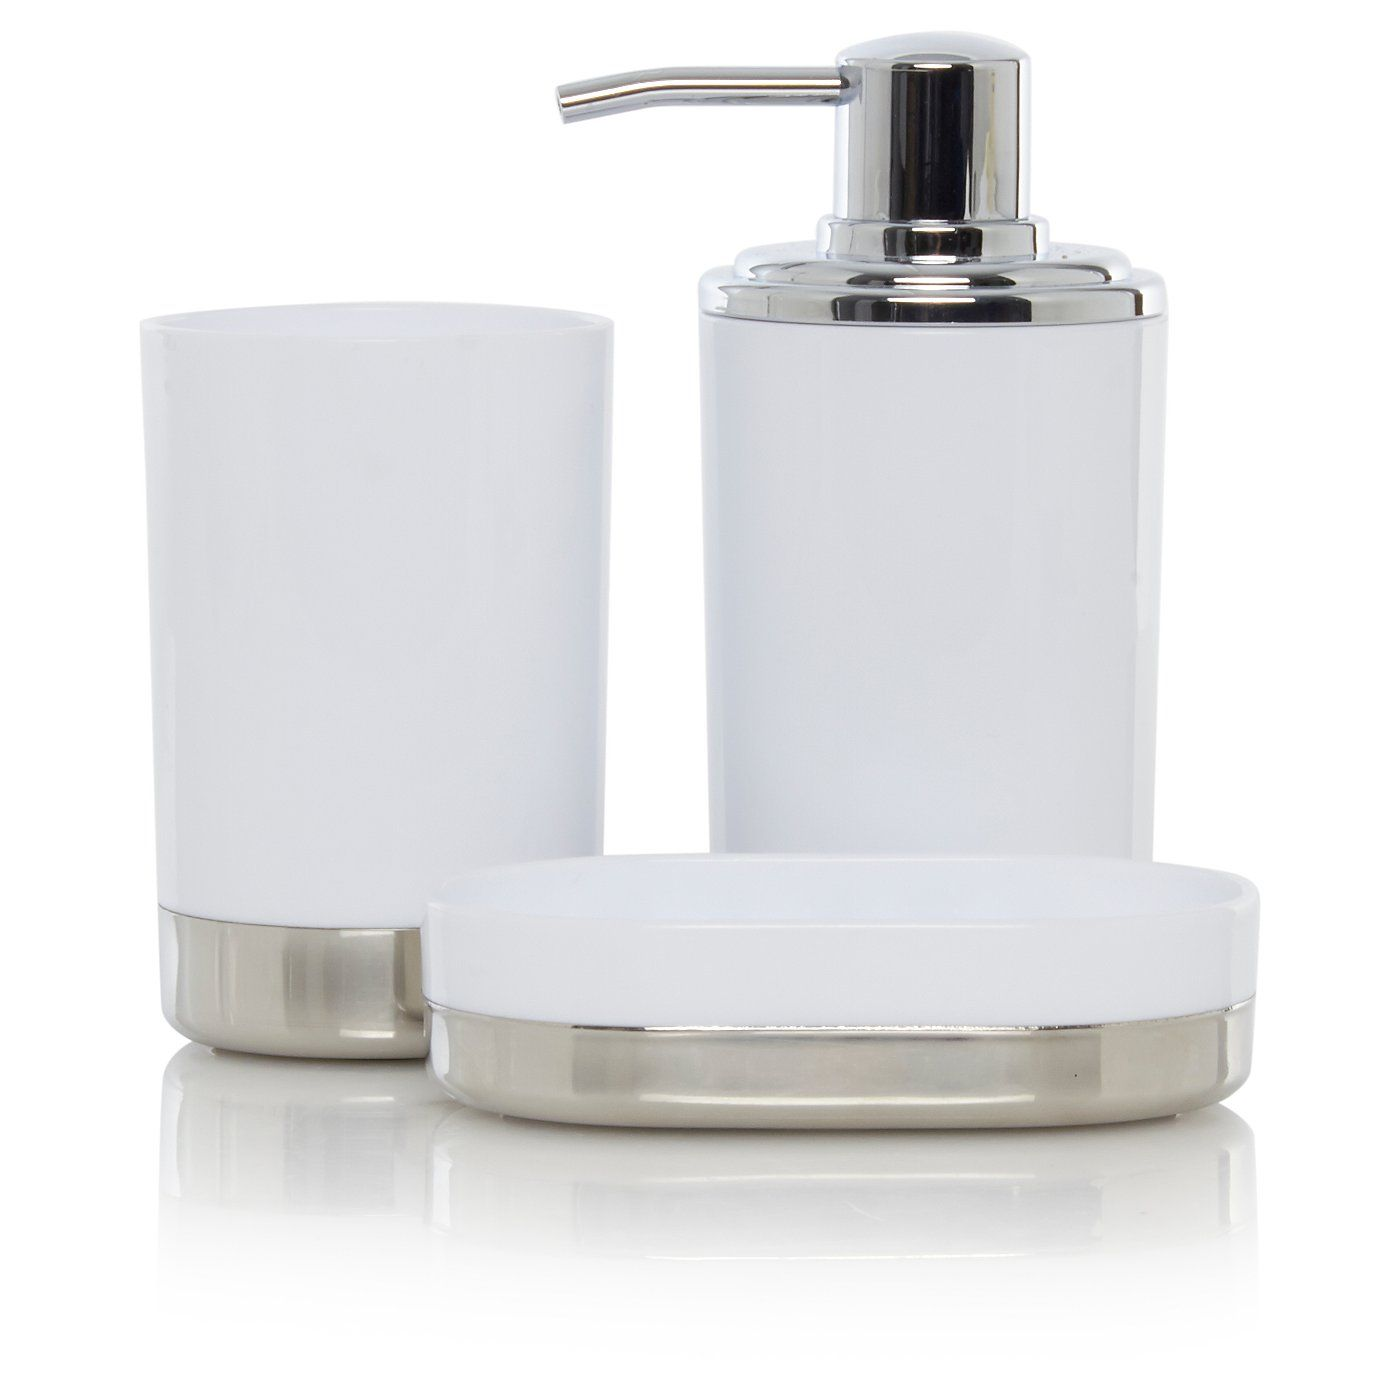 Buy White & Chrome Bath Accessories Range from our Bathroom ...